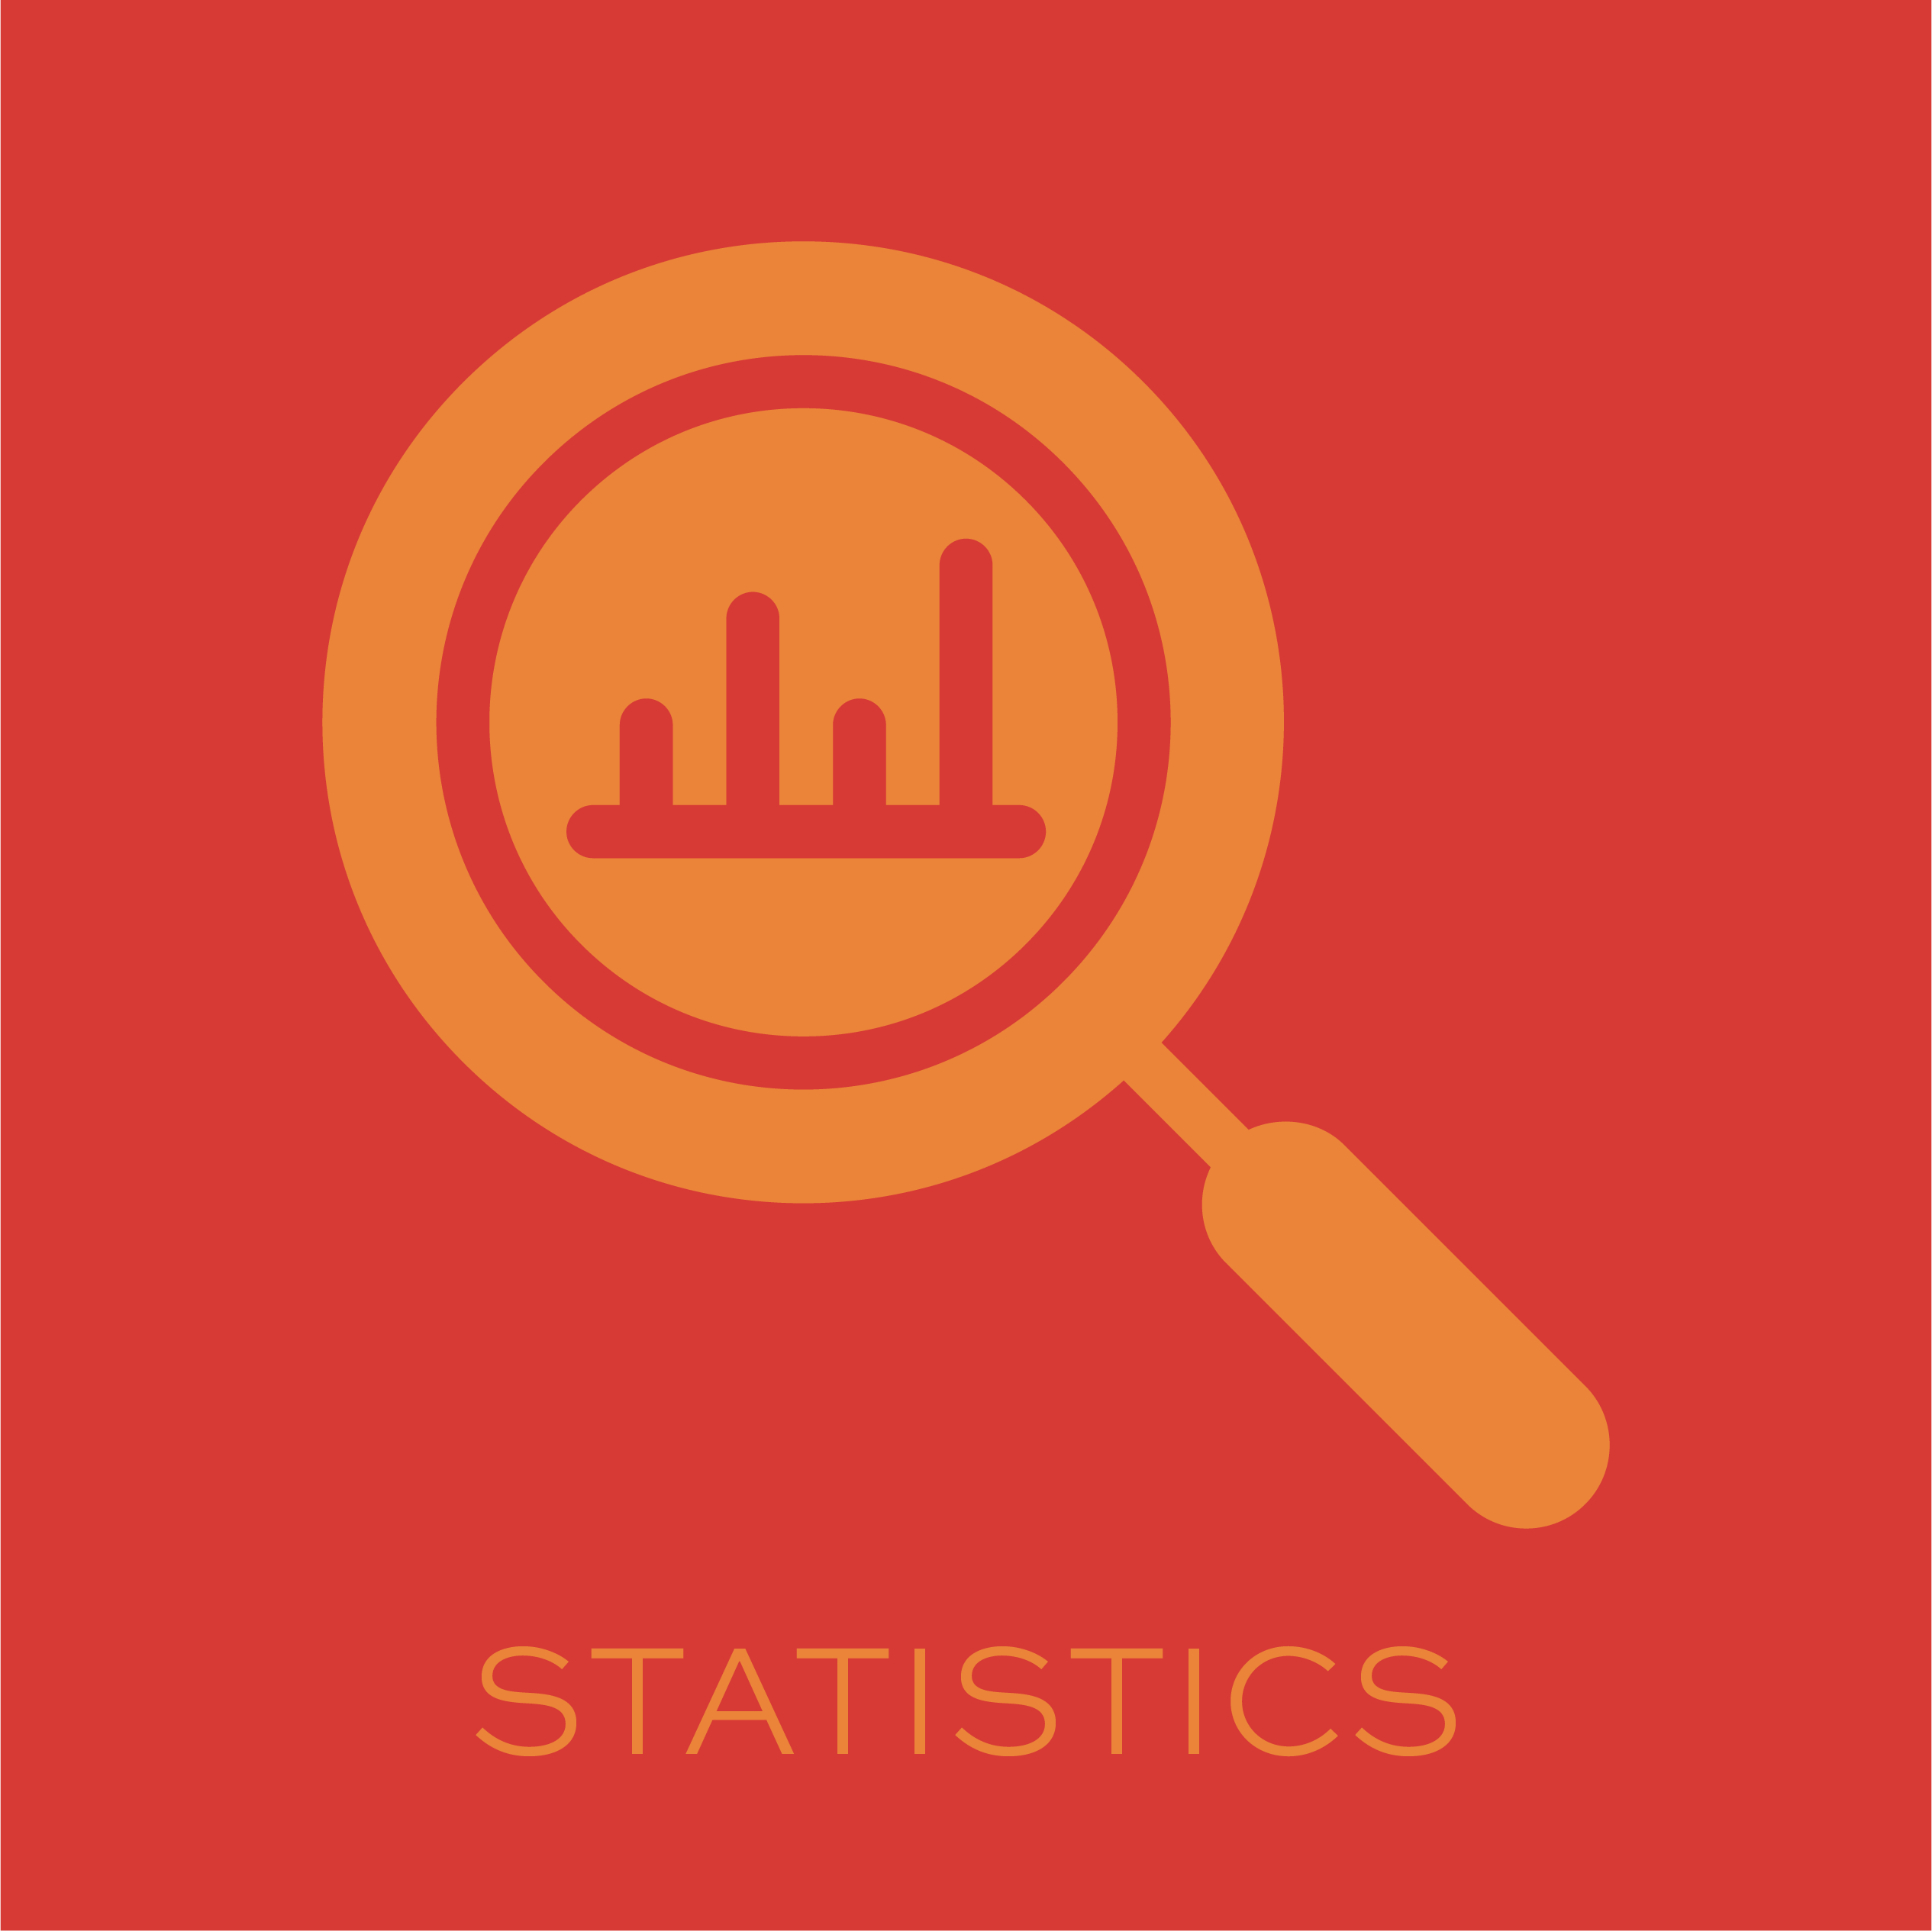 picto statistic